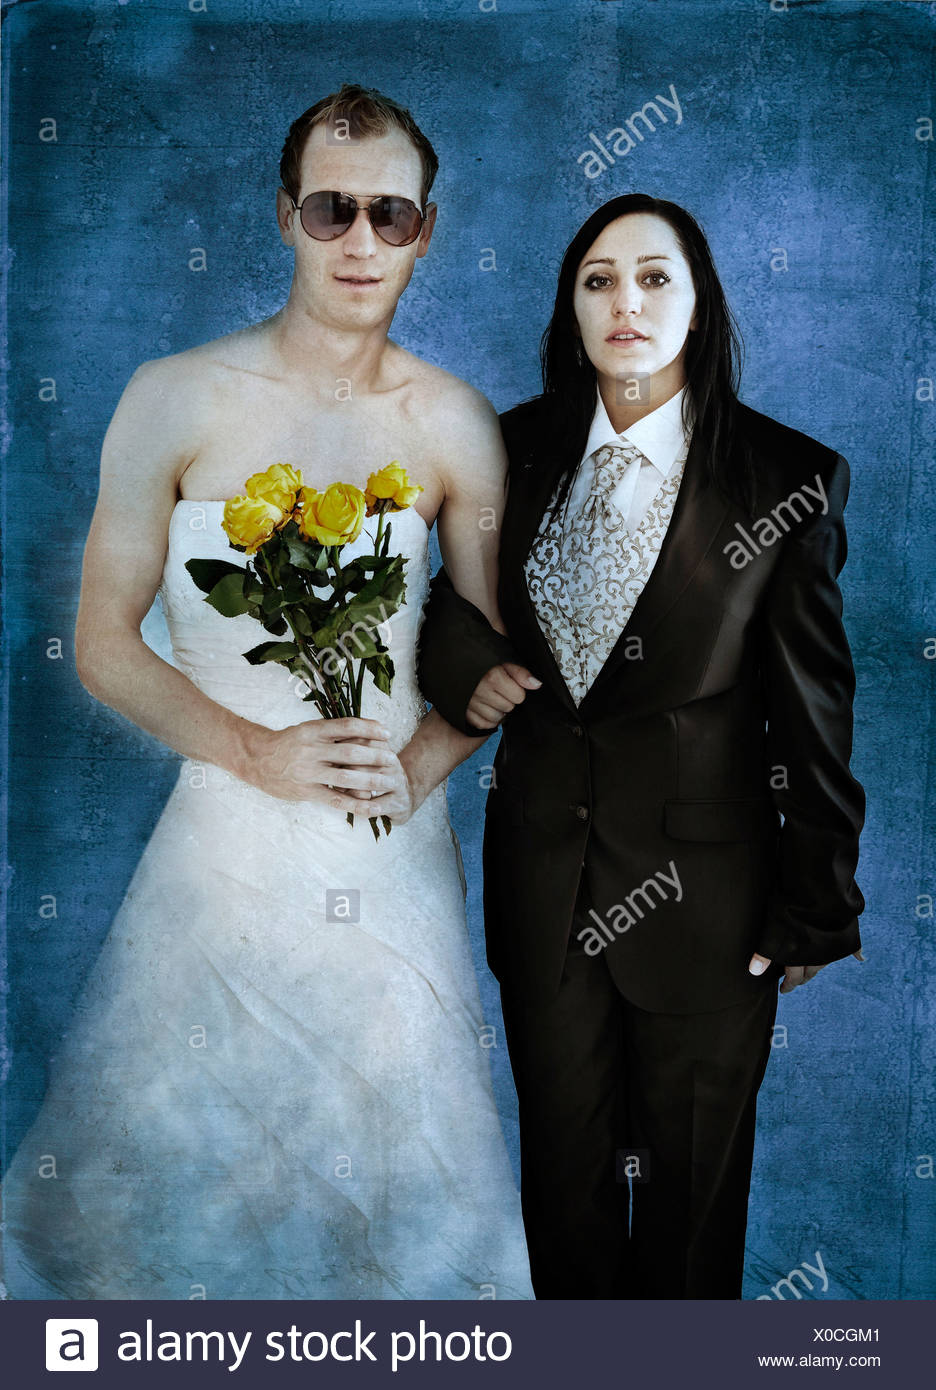 Bride wearing a suit and a groom wearing a wedding dress with ...